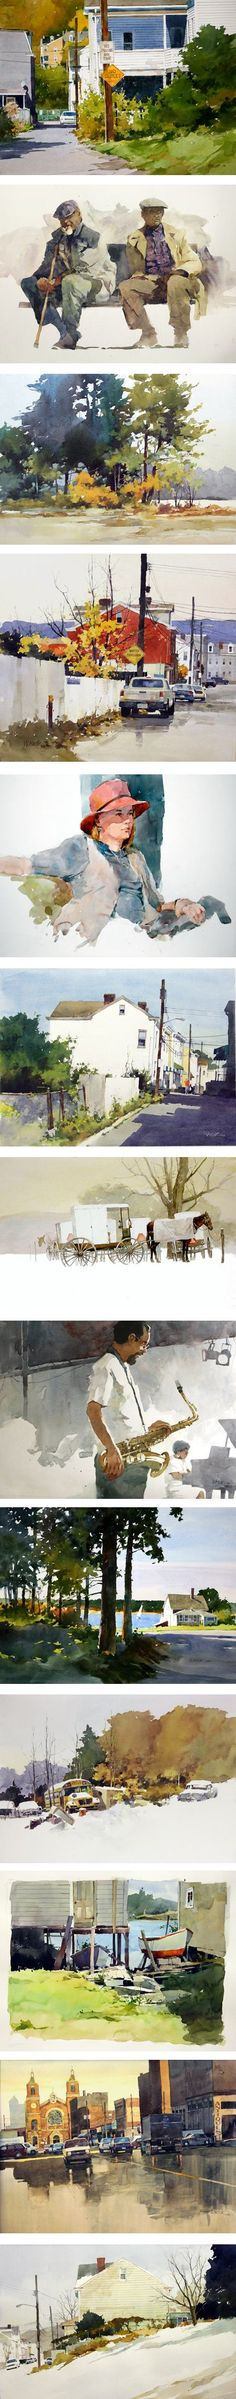 Bill Vrscak, watercolor - To have this talent would be a dream come true.